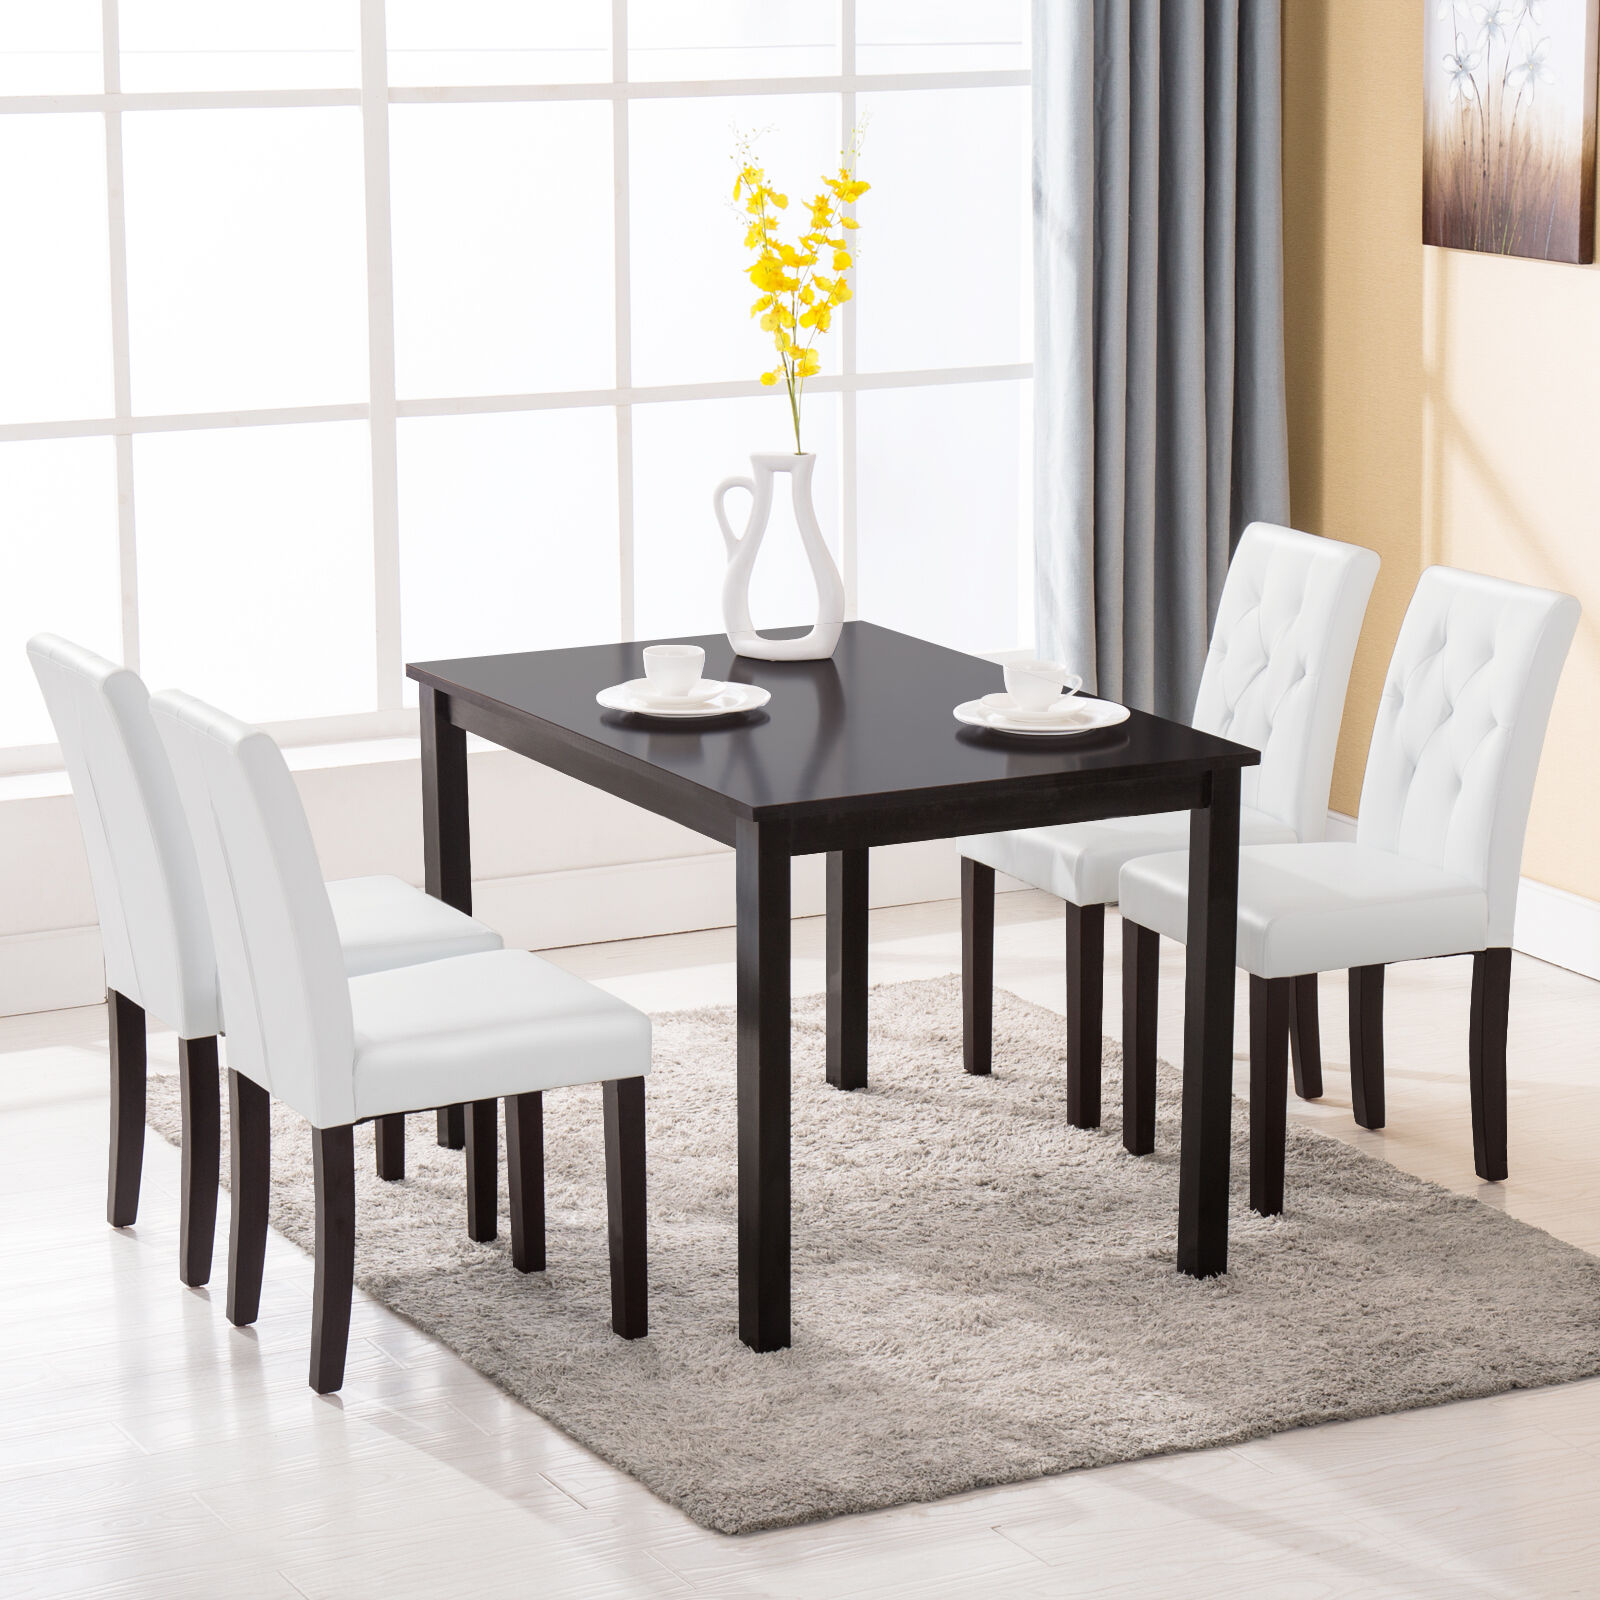 Dining Room Sets With Bench: 5 Piece Dining Table Set 4 Chairs Room Kitchen Dinette